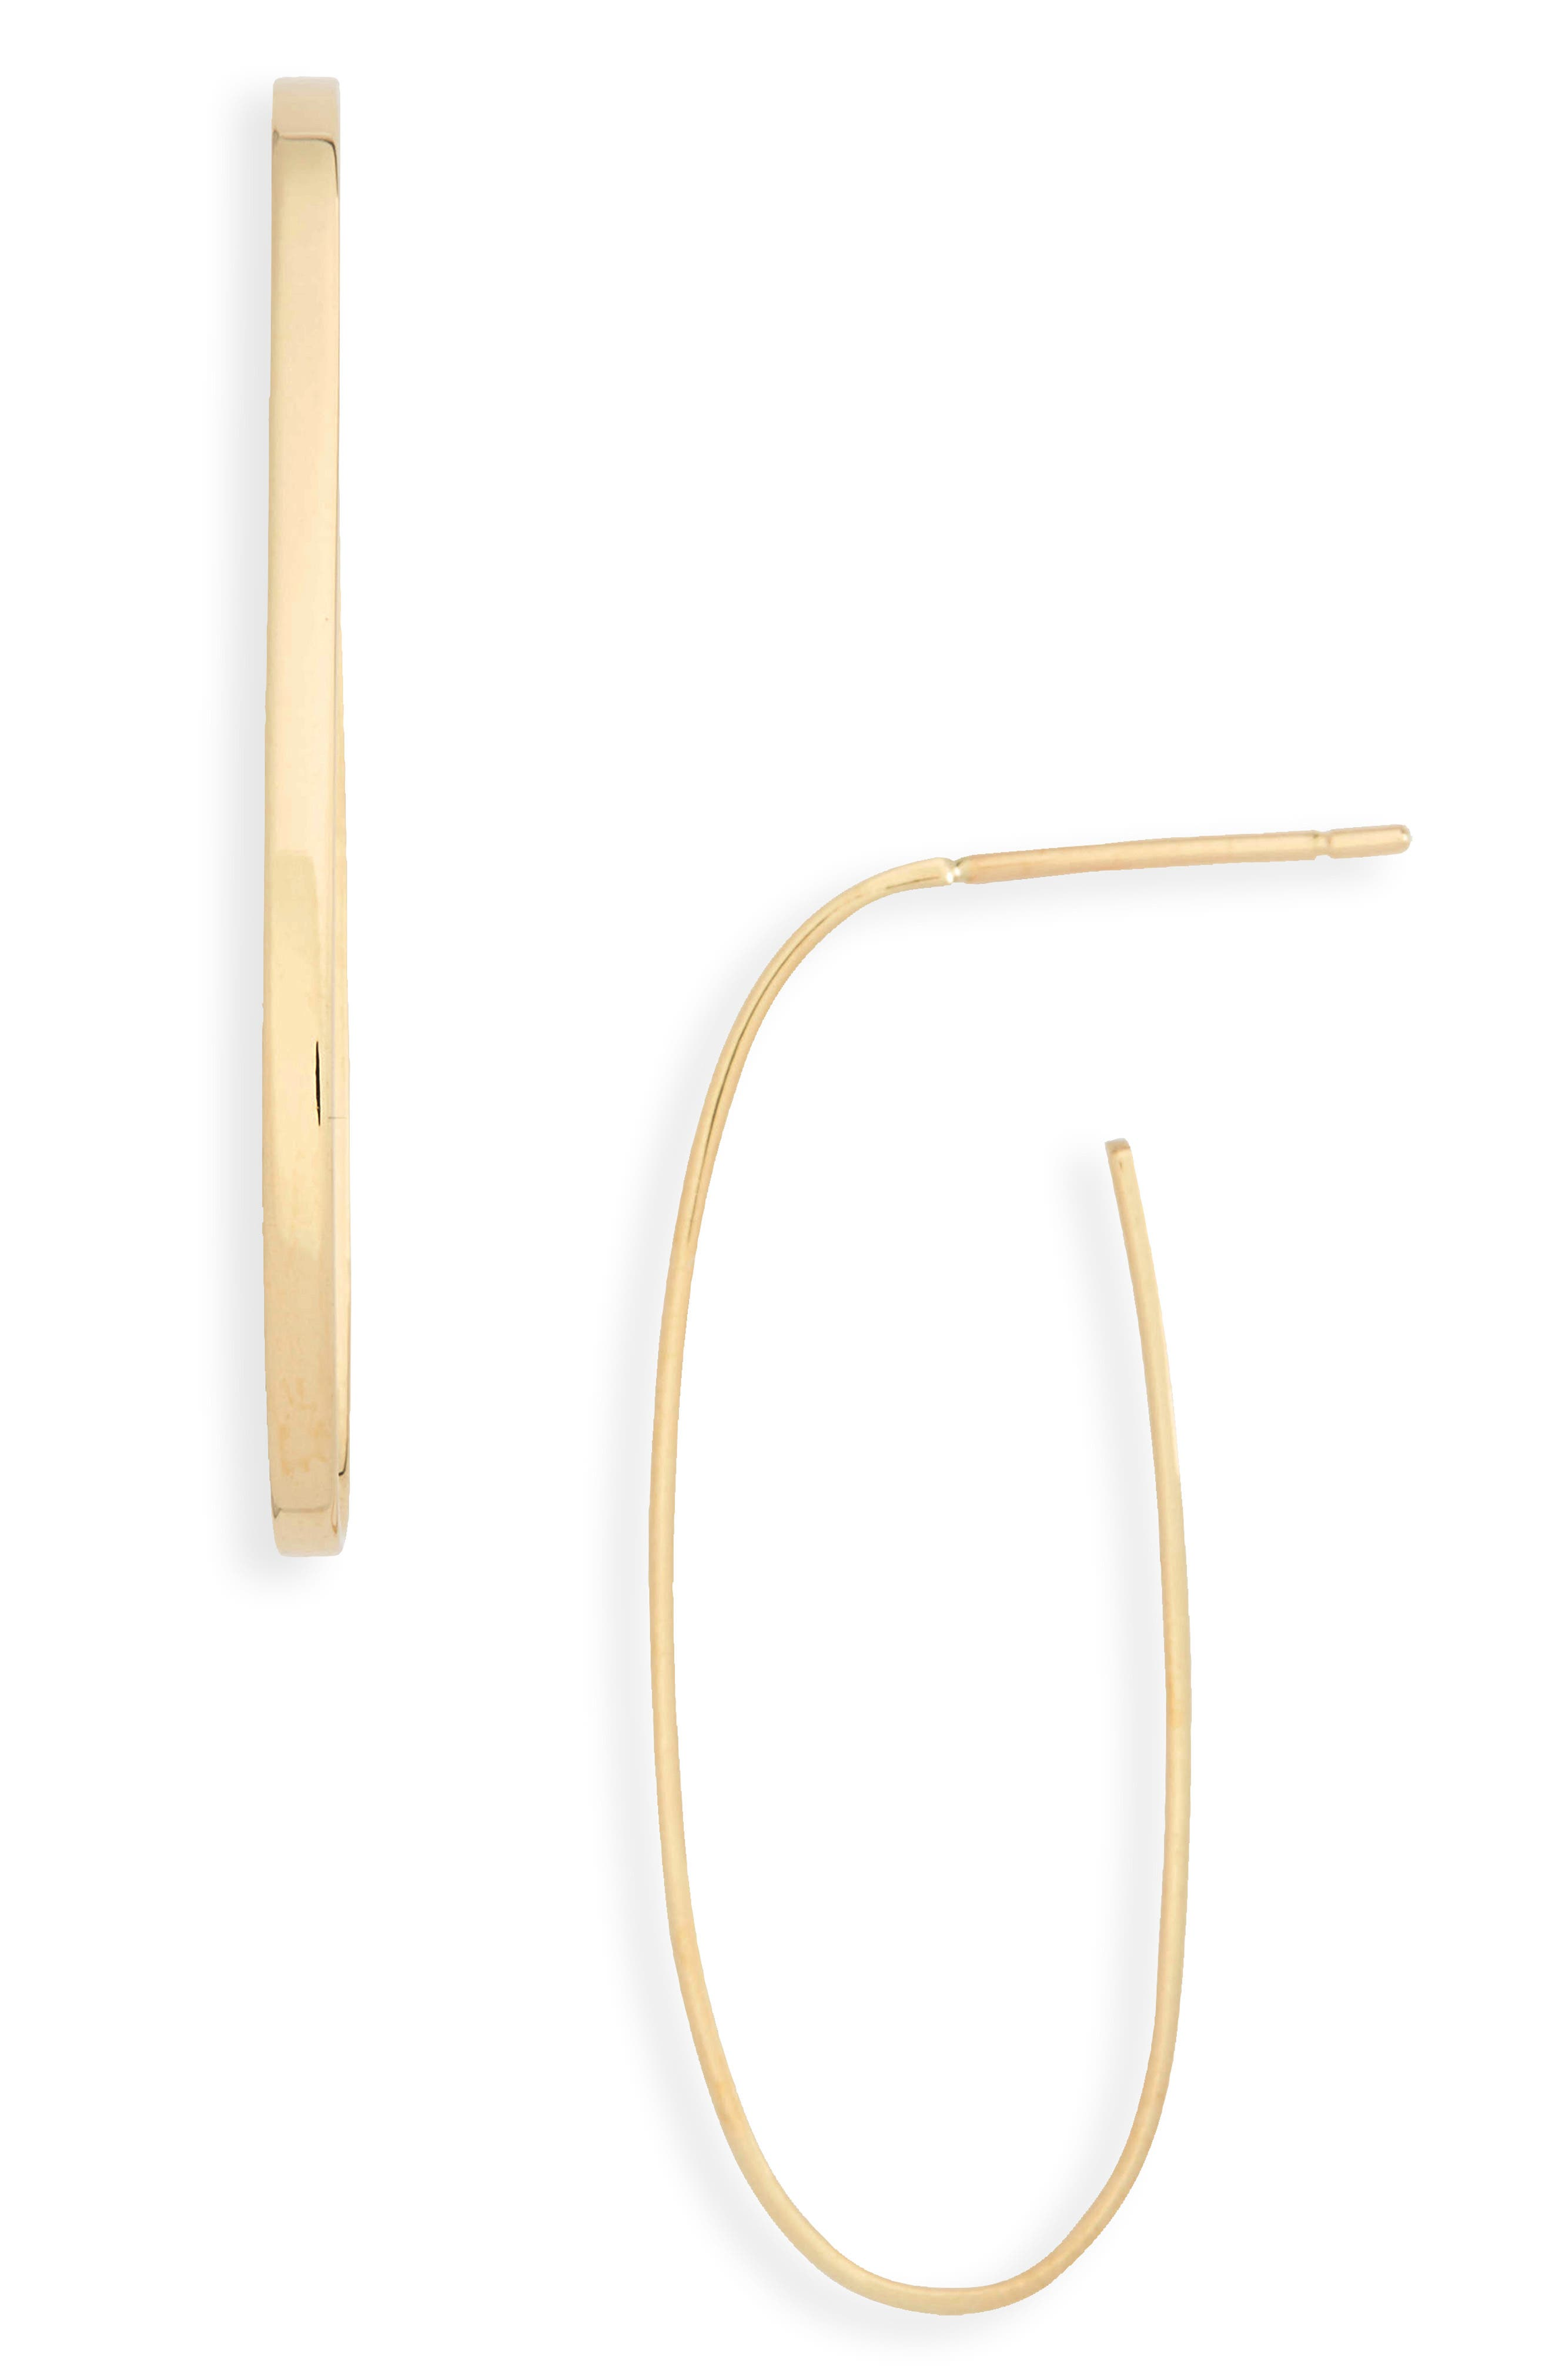 Flat Long Oval Hoop Earrings,                             Main thumbnail 1, color,                             Yellow Gold